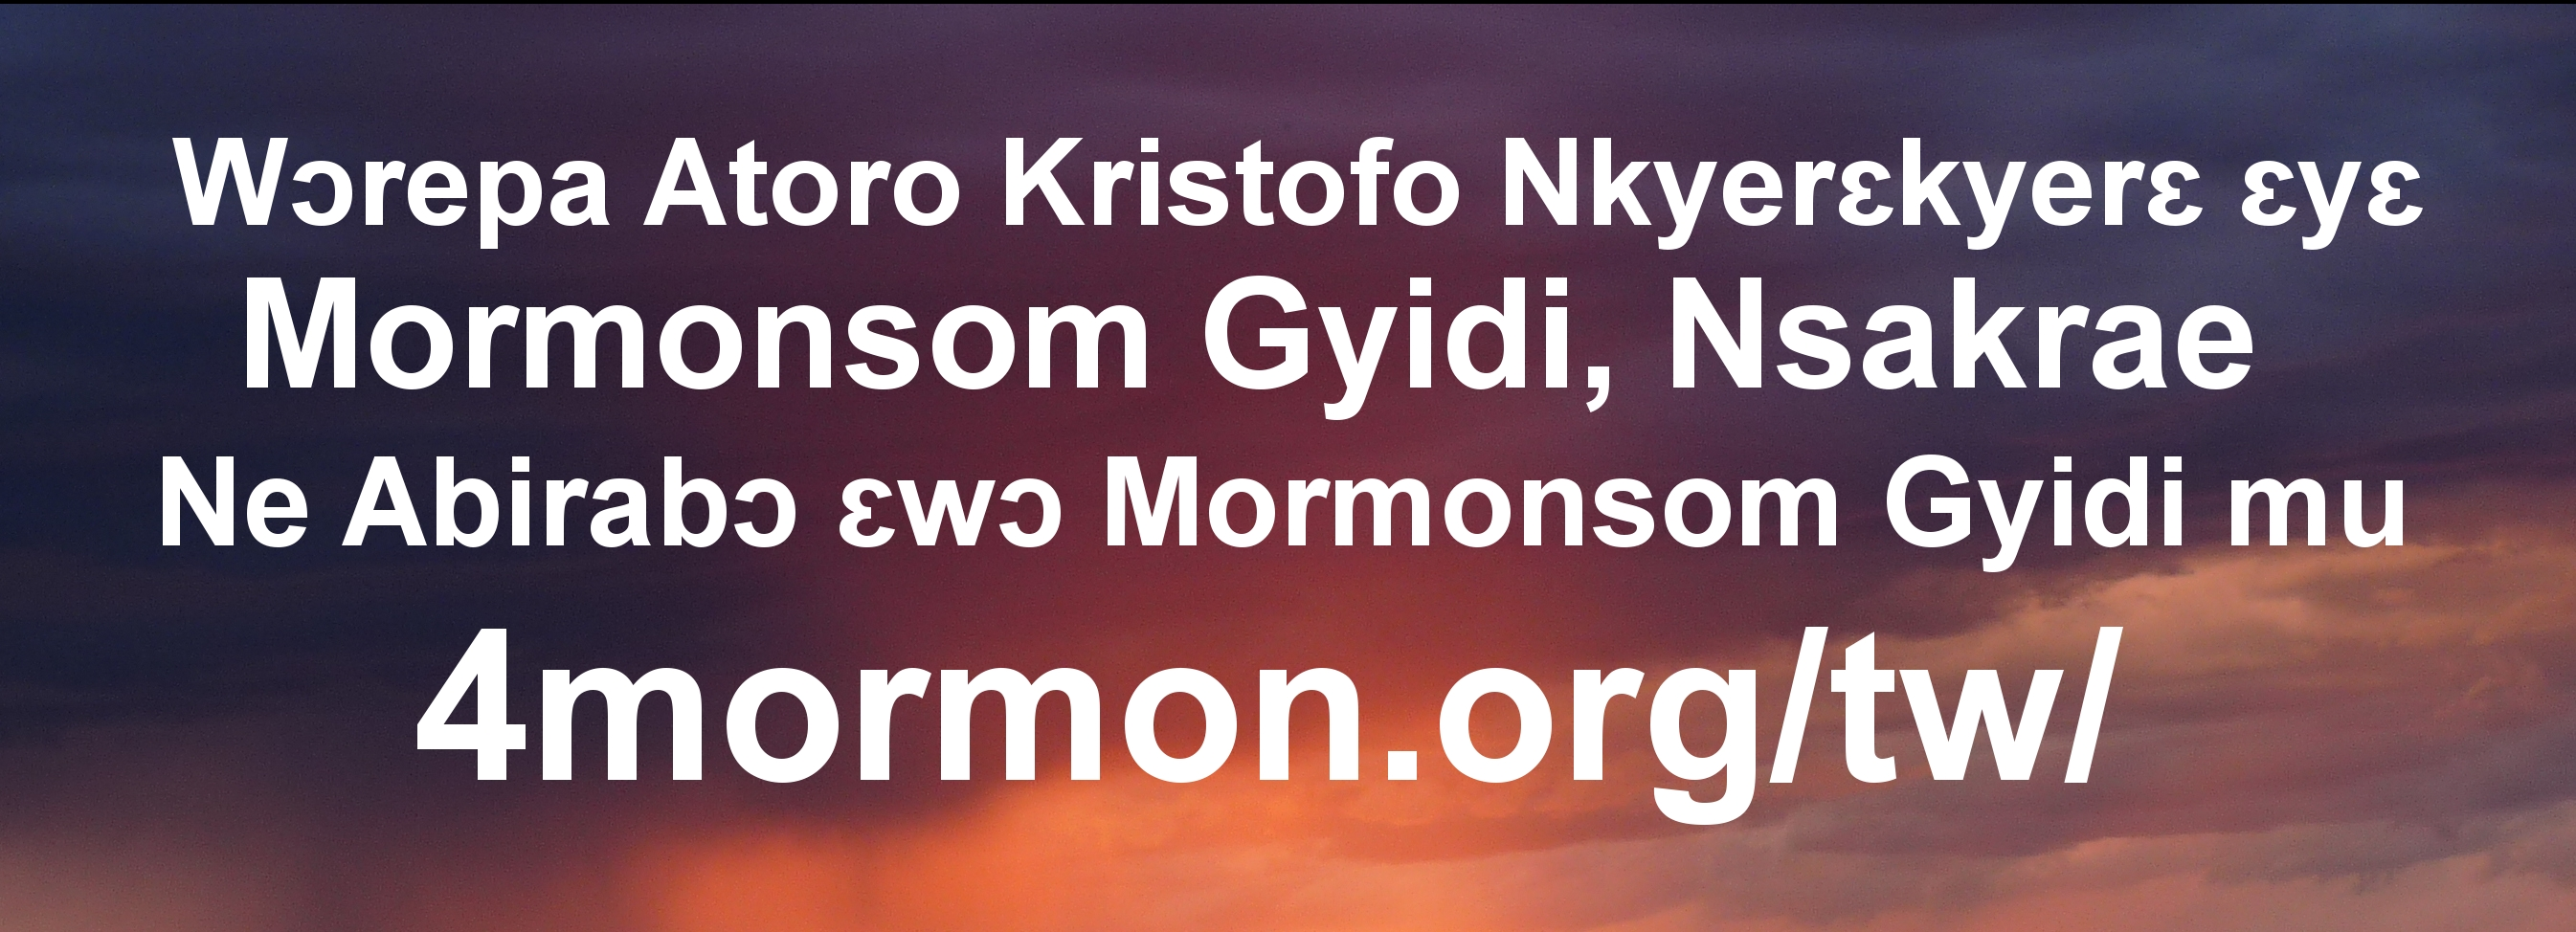 Exposing the Un-Christian Beliefs of Mormonism, Changes and Contradictions in LDS Doctrine 4Mormon.org